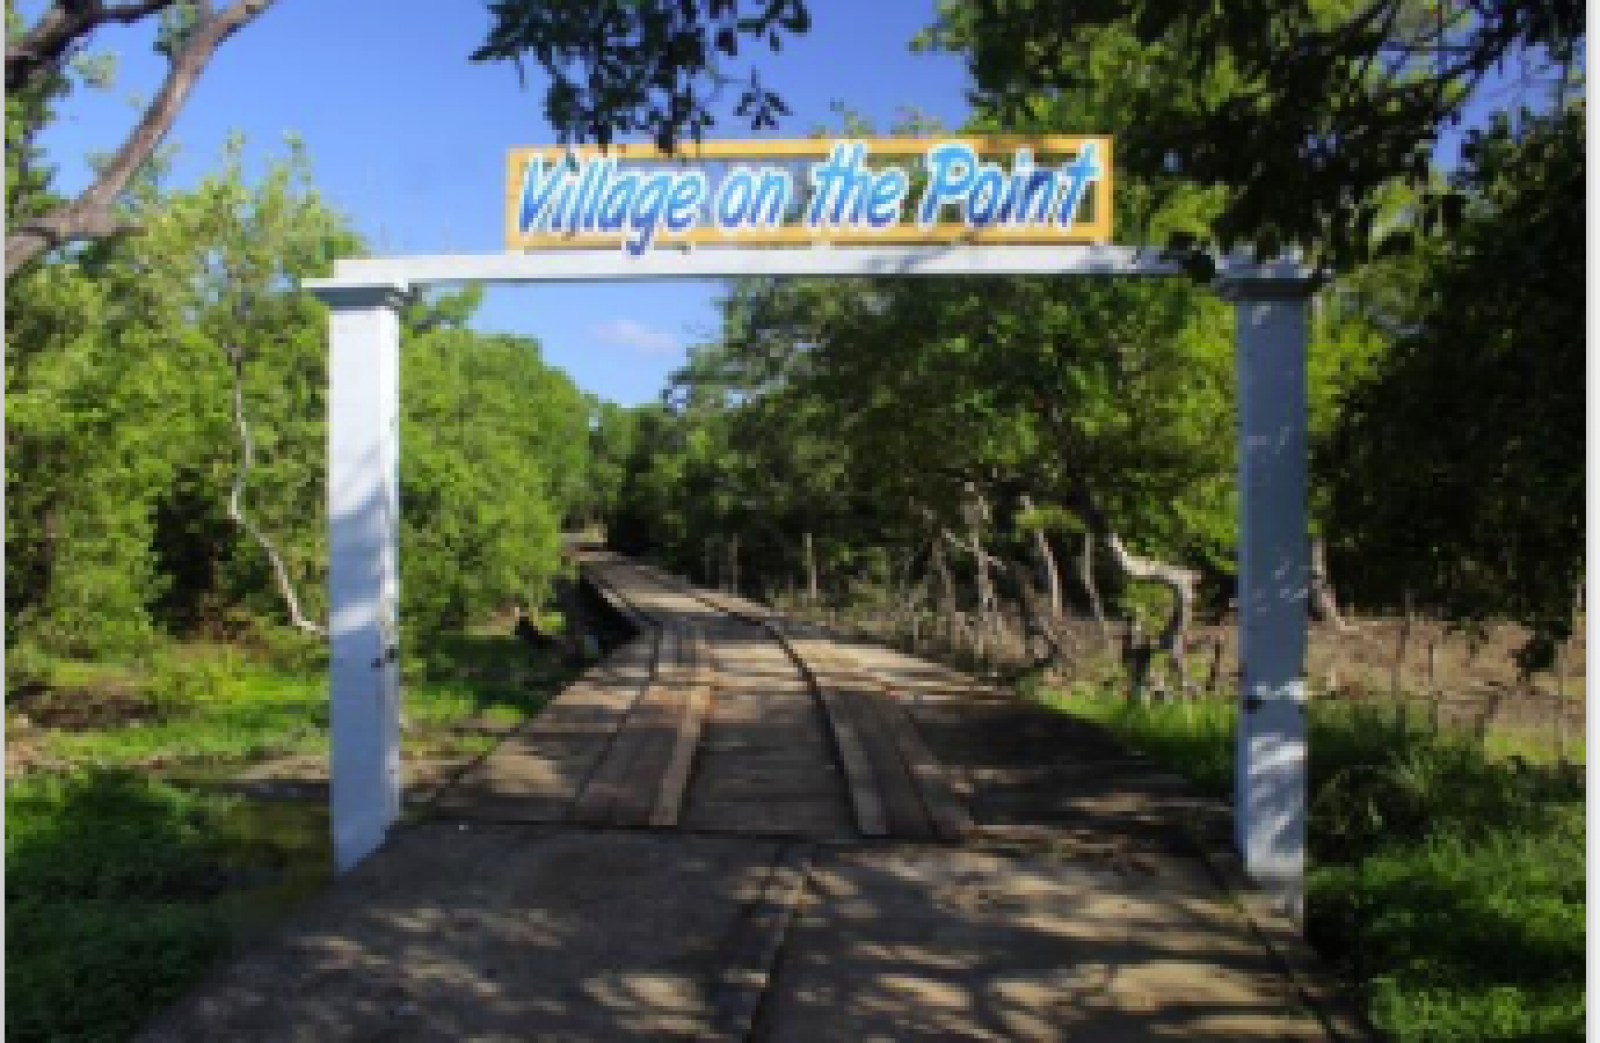 Village on the Point - small community entrance